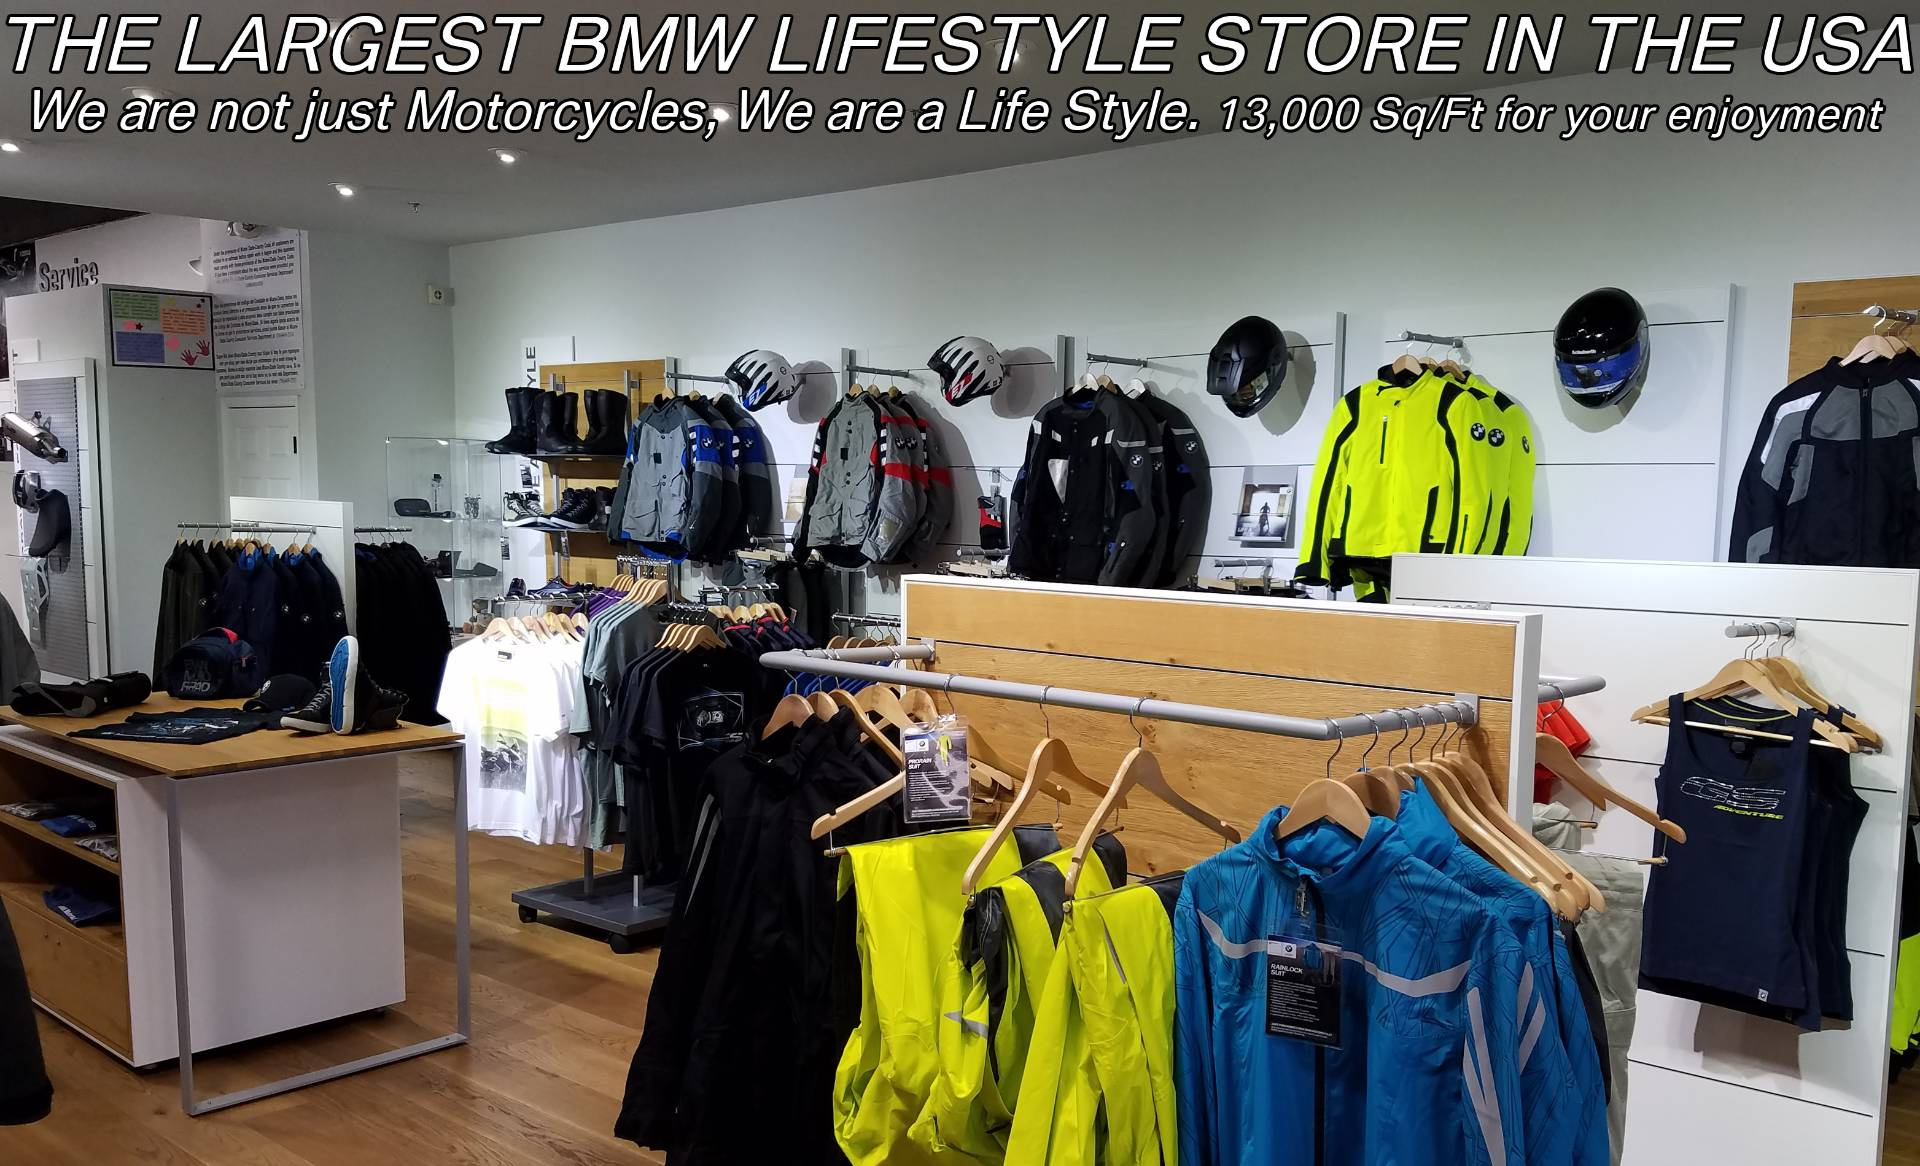 Used 2017 BMW R 1200 GSA for sale, Pre-owned BMW R1200GSA for sale, BMW Motorcycle Adventure, used BMW Adventure triple black, BMW Motorcycles of Miami, Motorcycles of Miami, Motorcycles Miami, New Motorcycles, Used Motorcycles, pre-owned. #BMWMotorcyclesOfMiami #MotorcyclesOfMiami - Photo 58